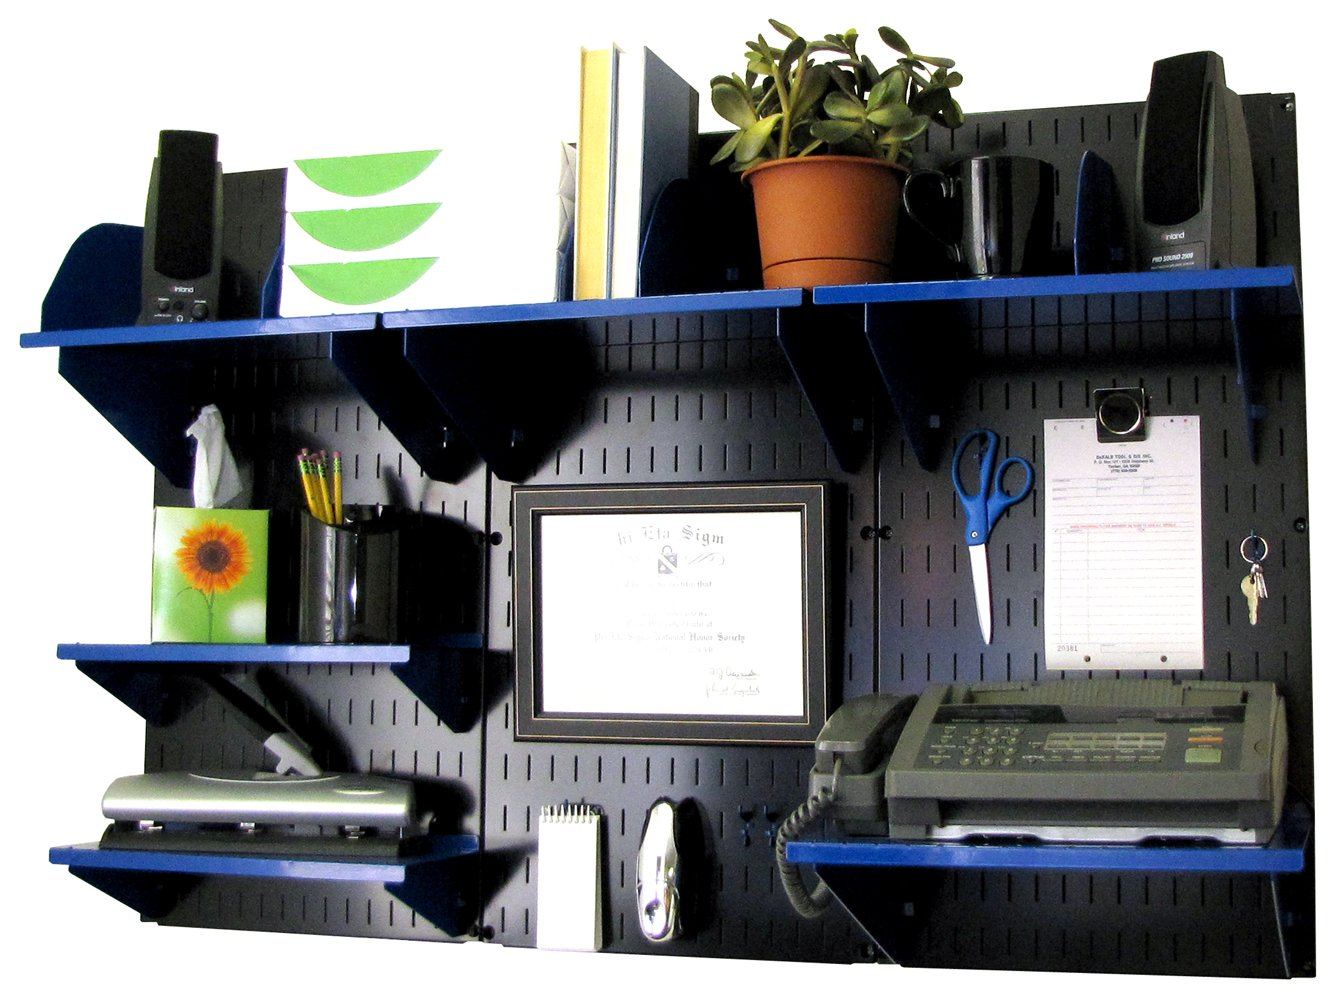 Wall Control Office Organizer Unit Wall Mounted Office Desk Storage and Organization Kit Black Wall Panels and Blue Accessories by Wall Control